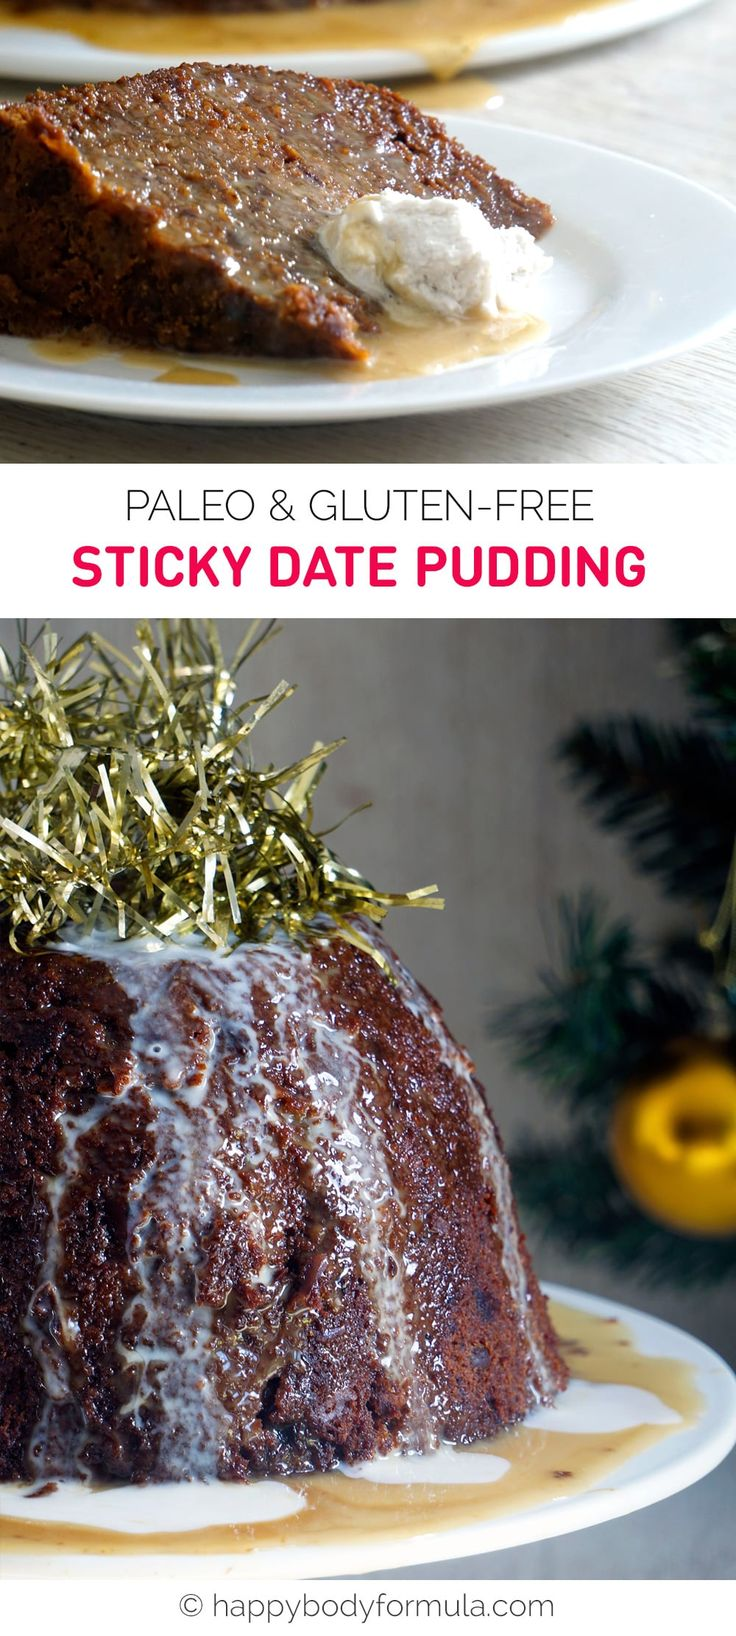 Paleo Sticky Date Pudding (grain-free, gluten-free, dairy-free). Recipe from Mummy Made It A Healthy Christmas eBook by Lisa McInerney.